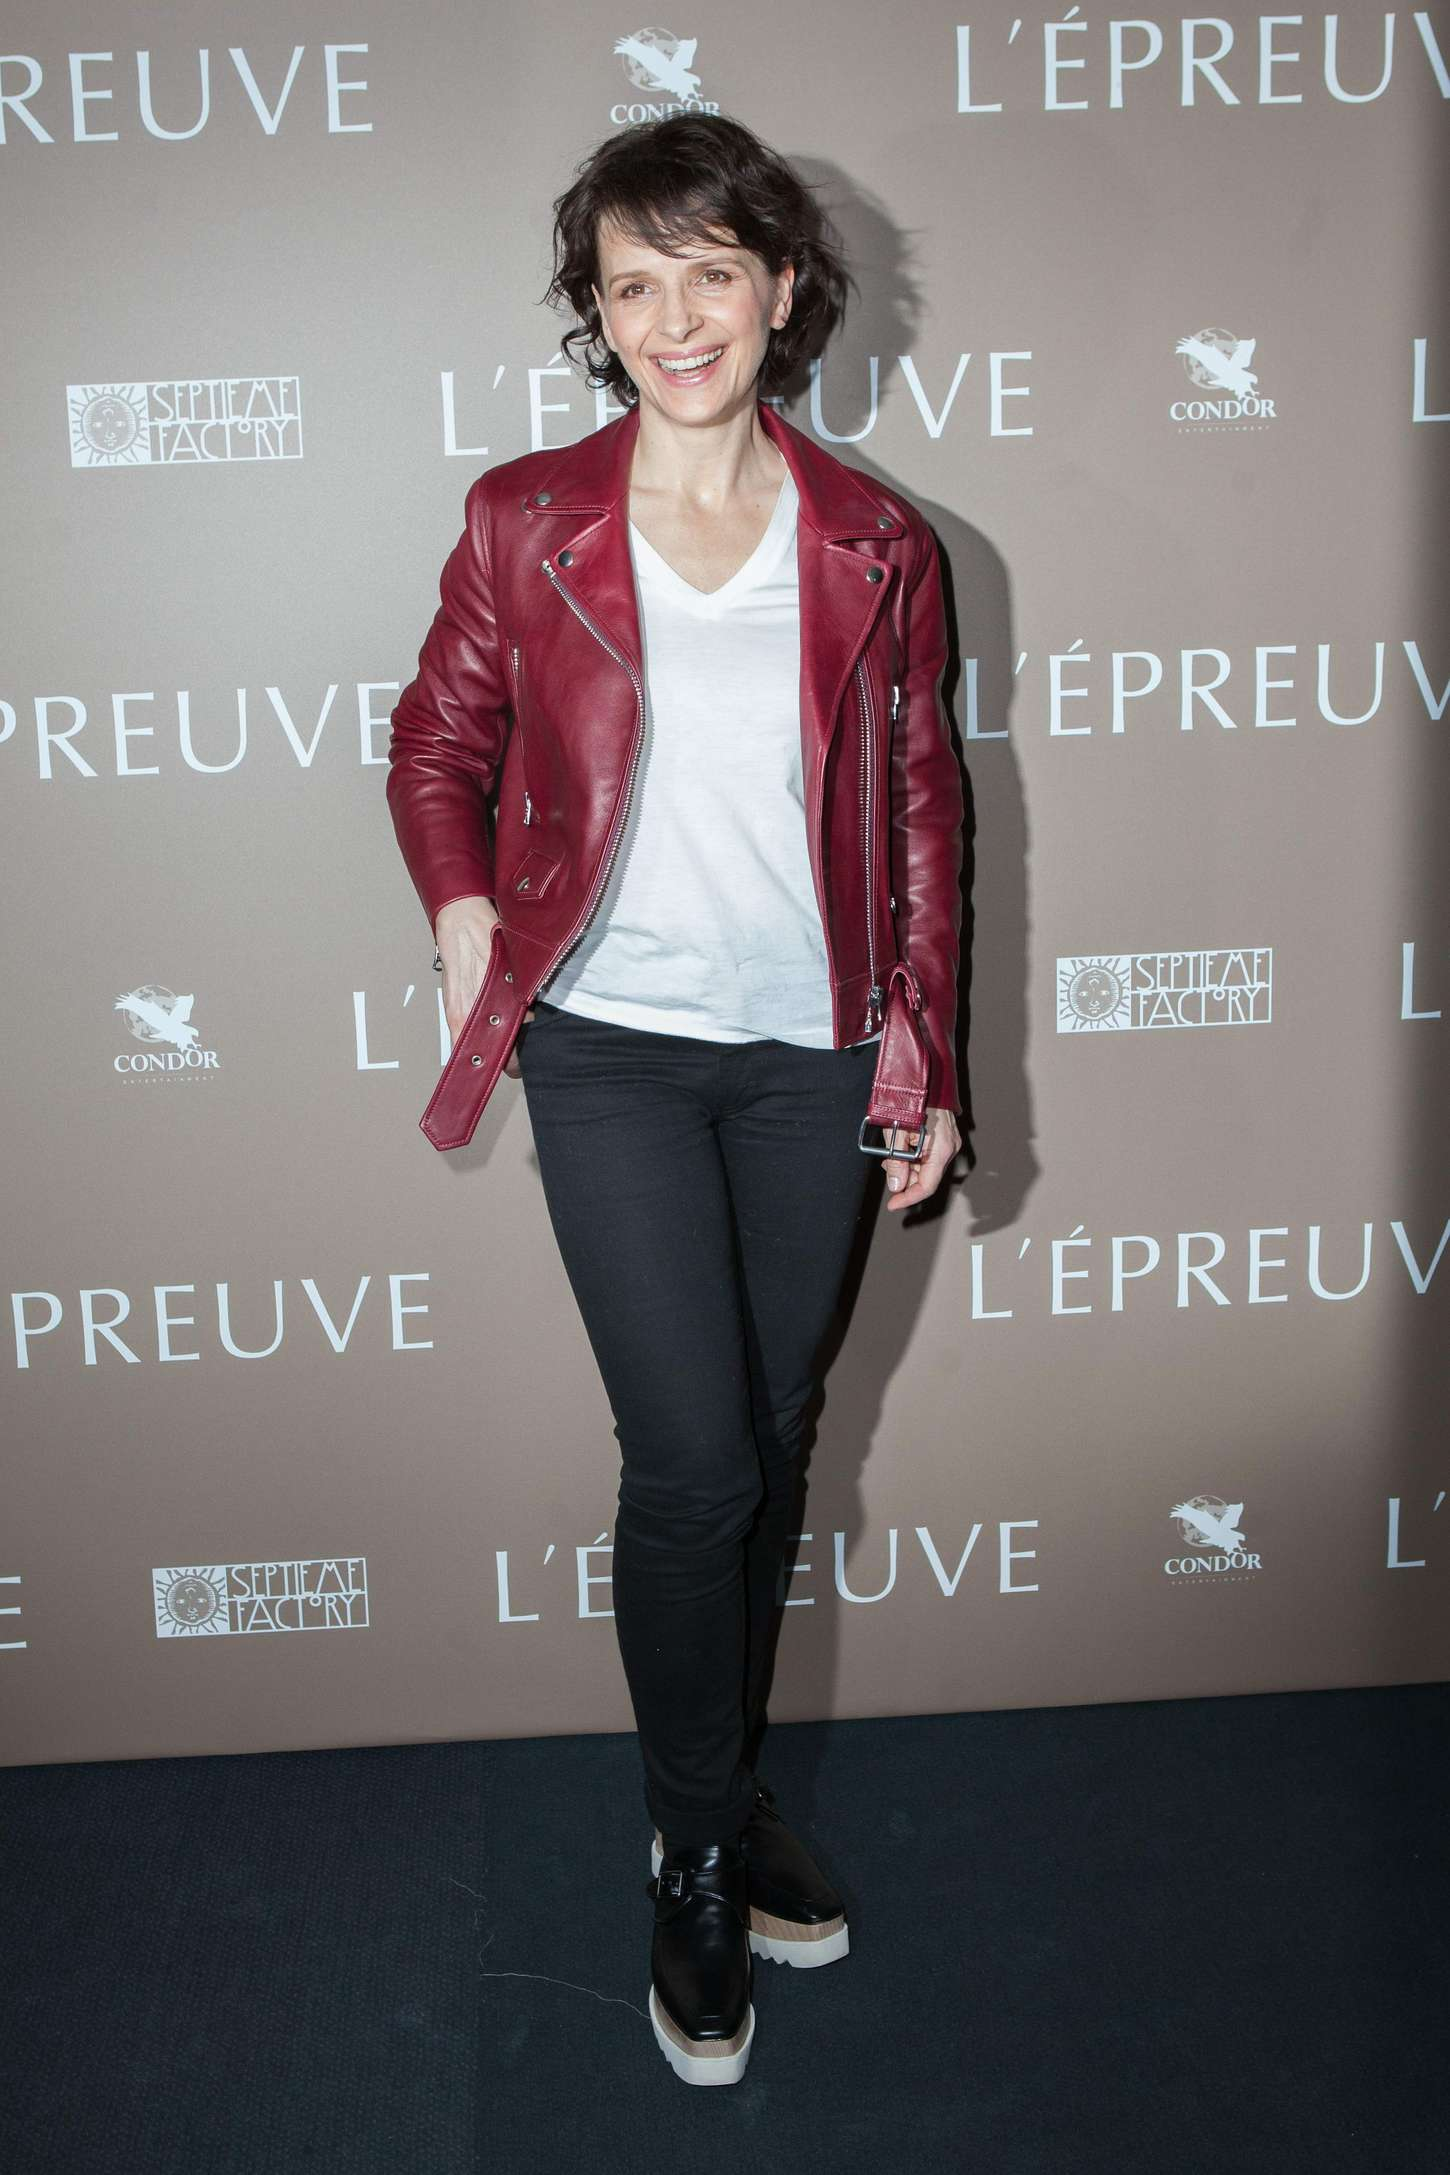 Juliette Binoche LEpreuve Premiere in Paris